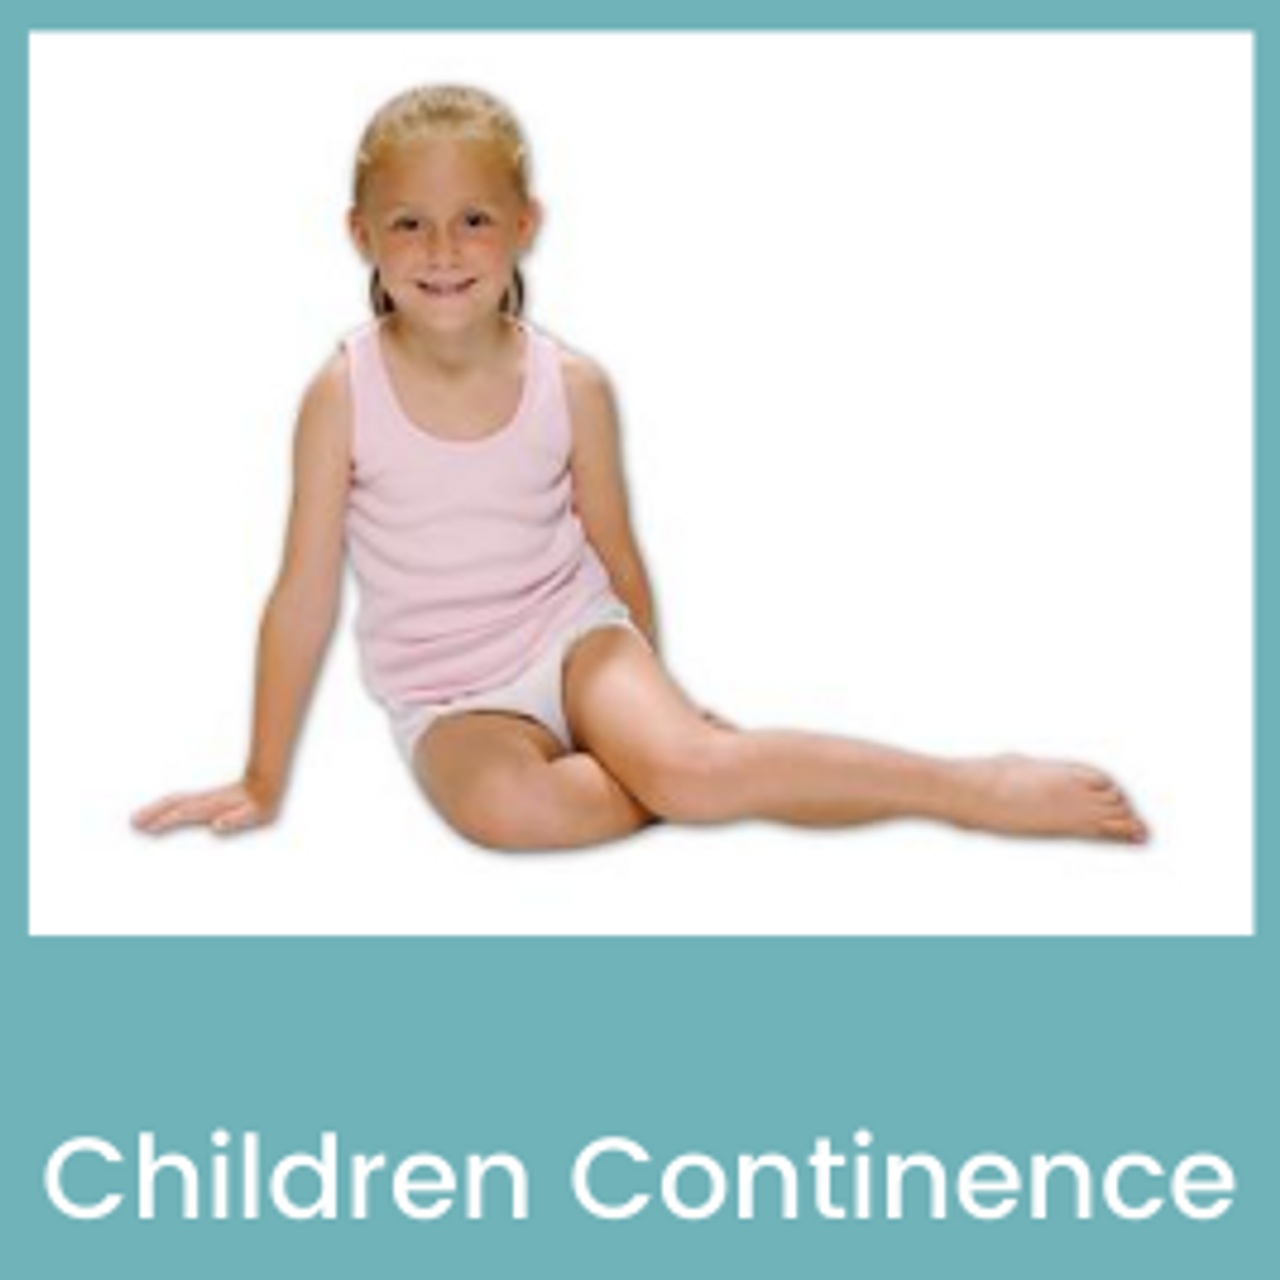 Children Incontinence Products